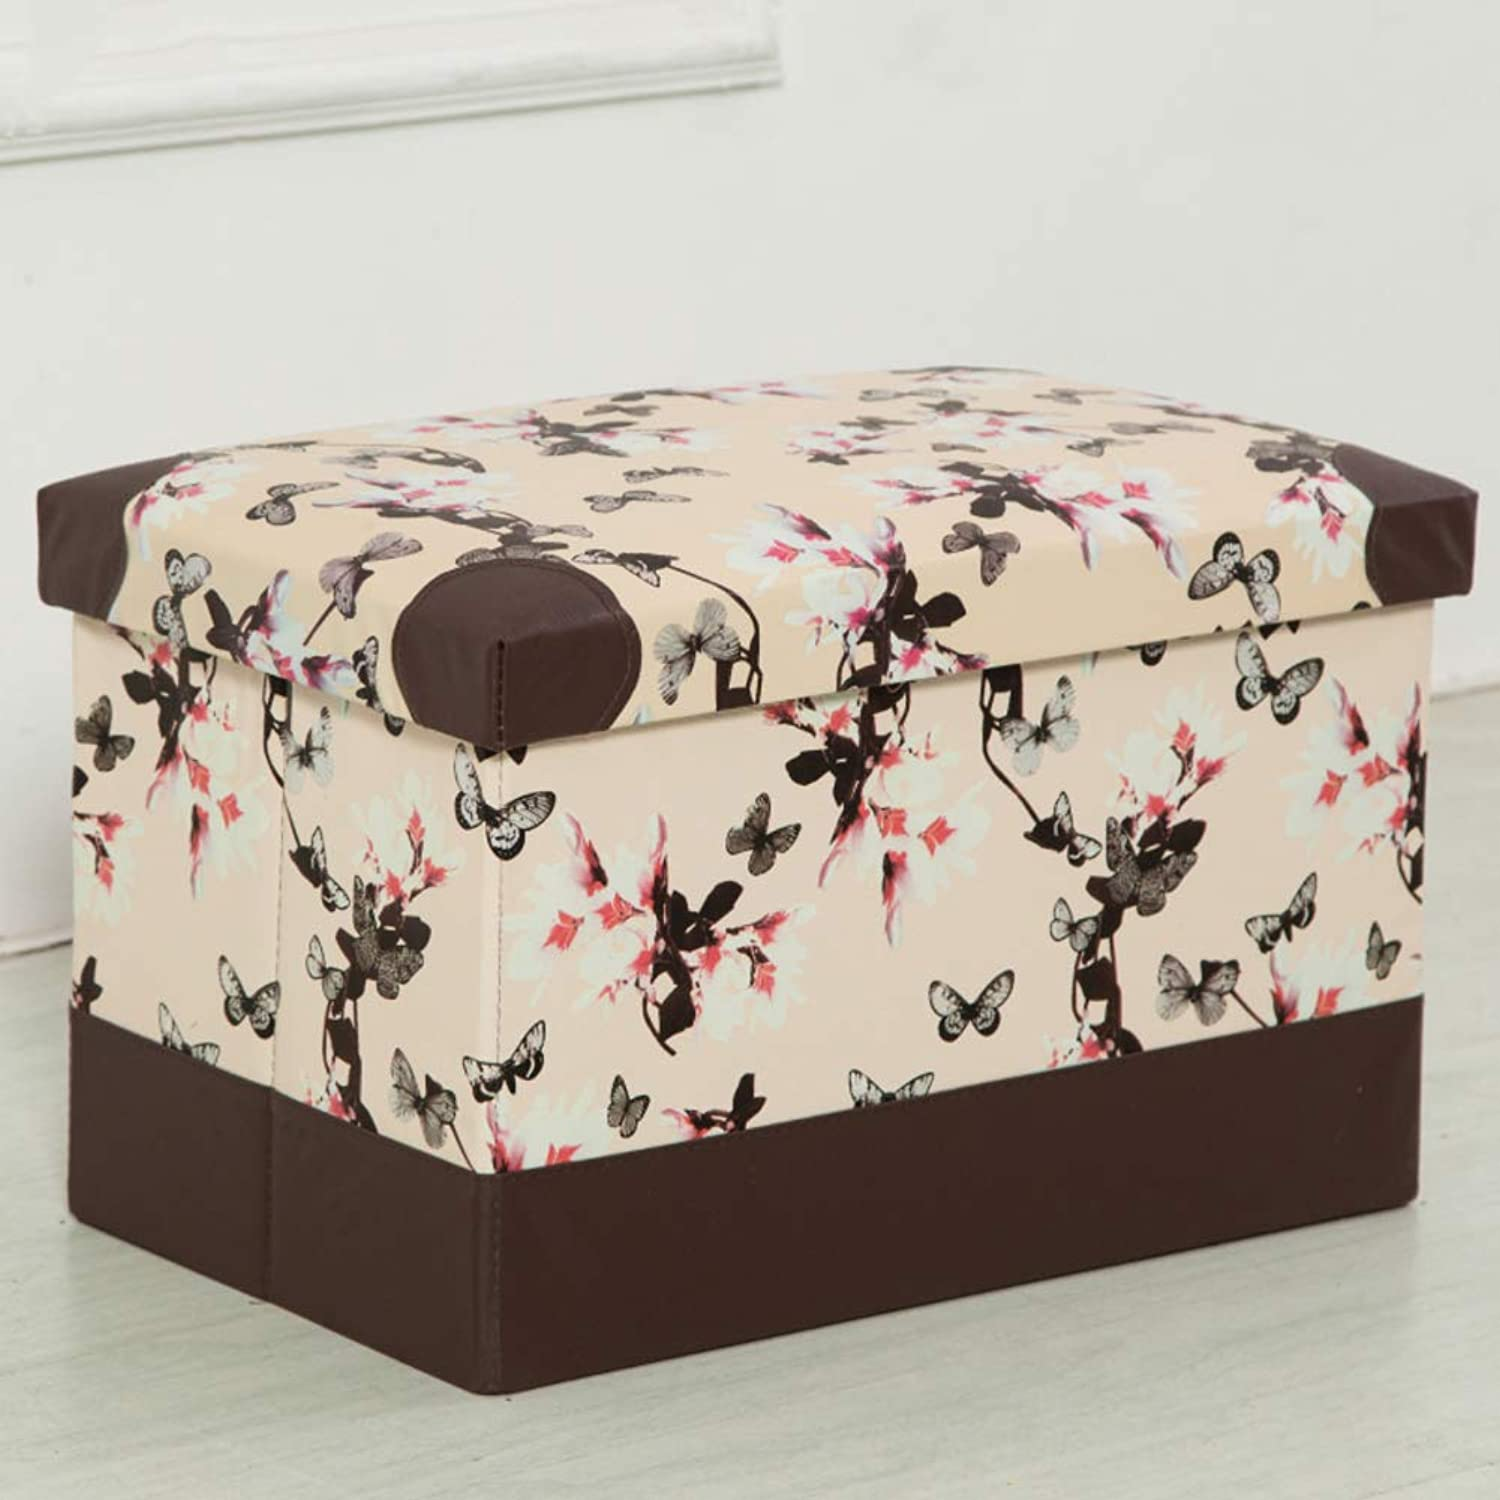 Faux Leather Foldable Cube Storage Footstool Large Capacity Footrest Stool Waterproof for Adult Bench shoes -C 48x31x31cm